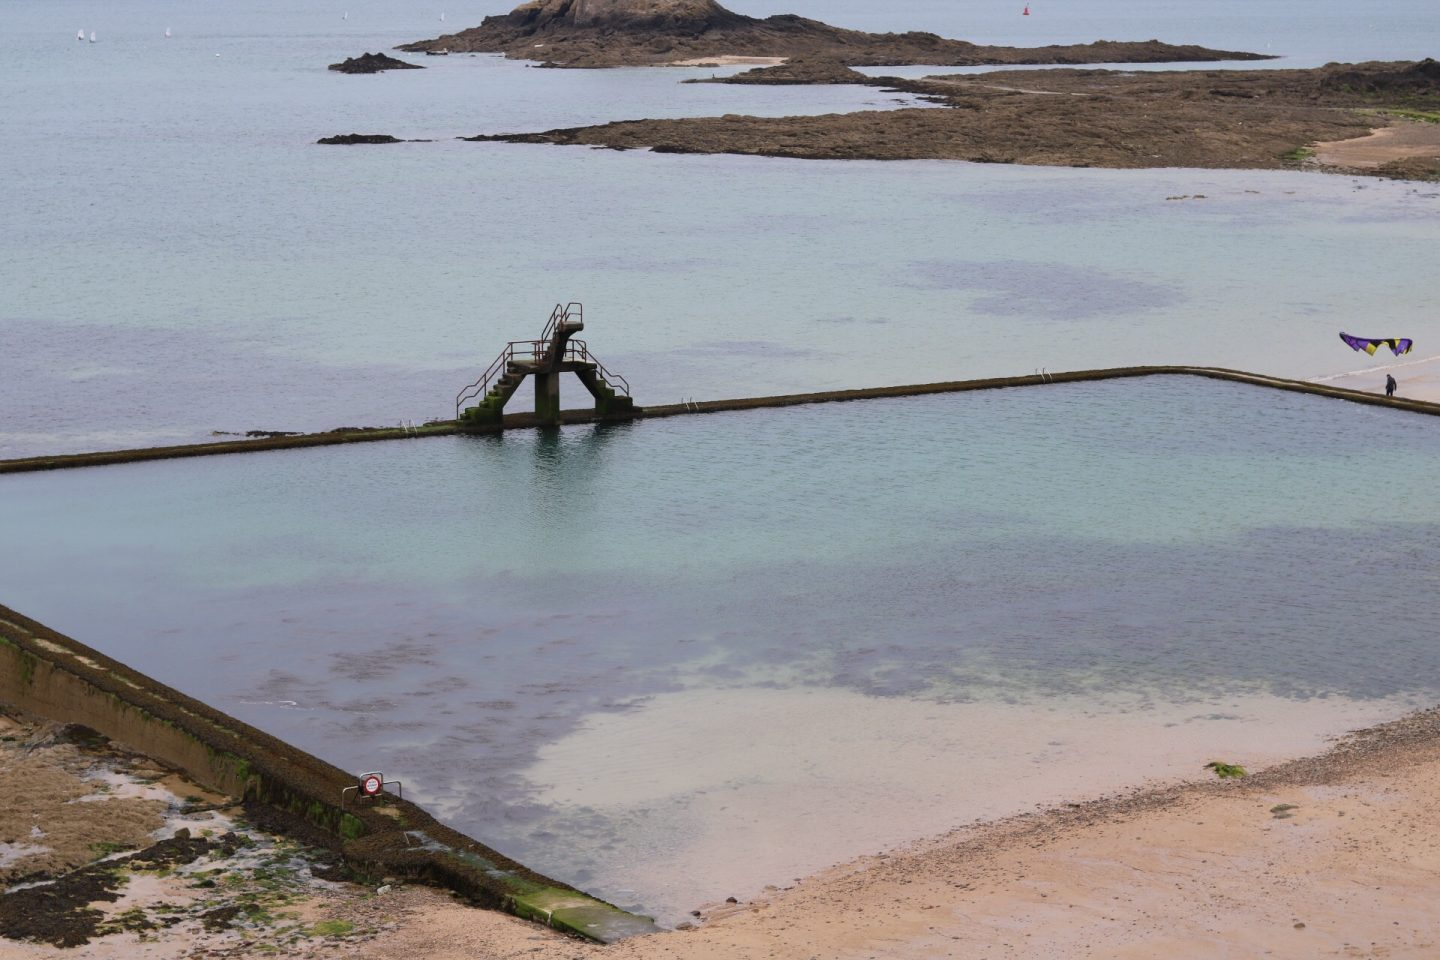 A weekend in St Malo, Brittany